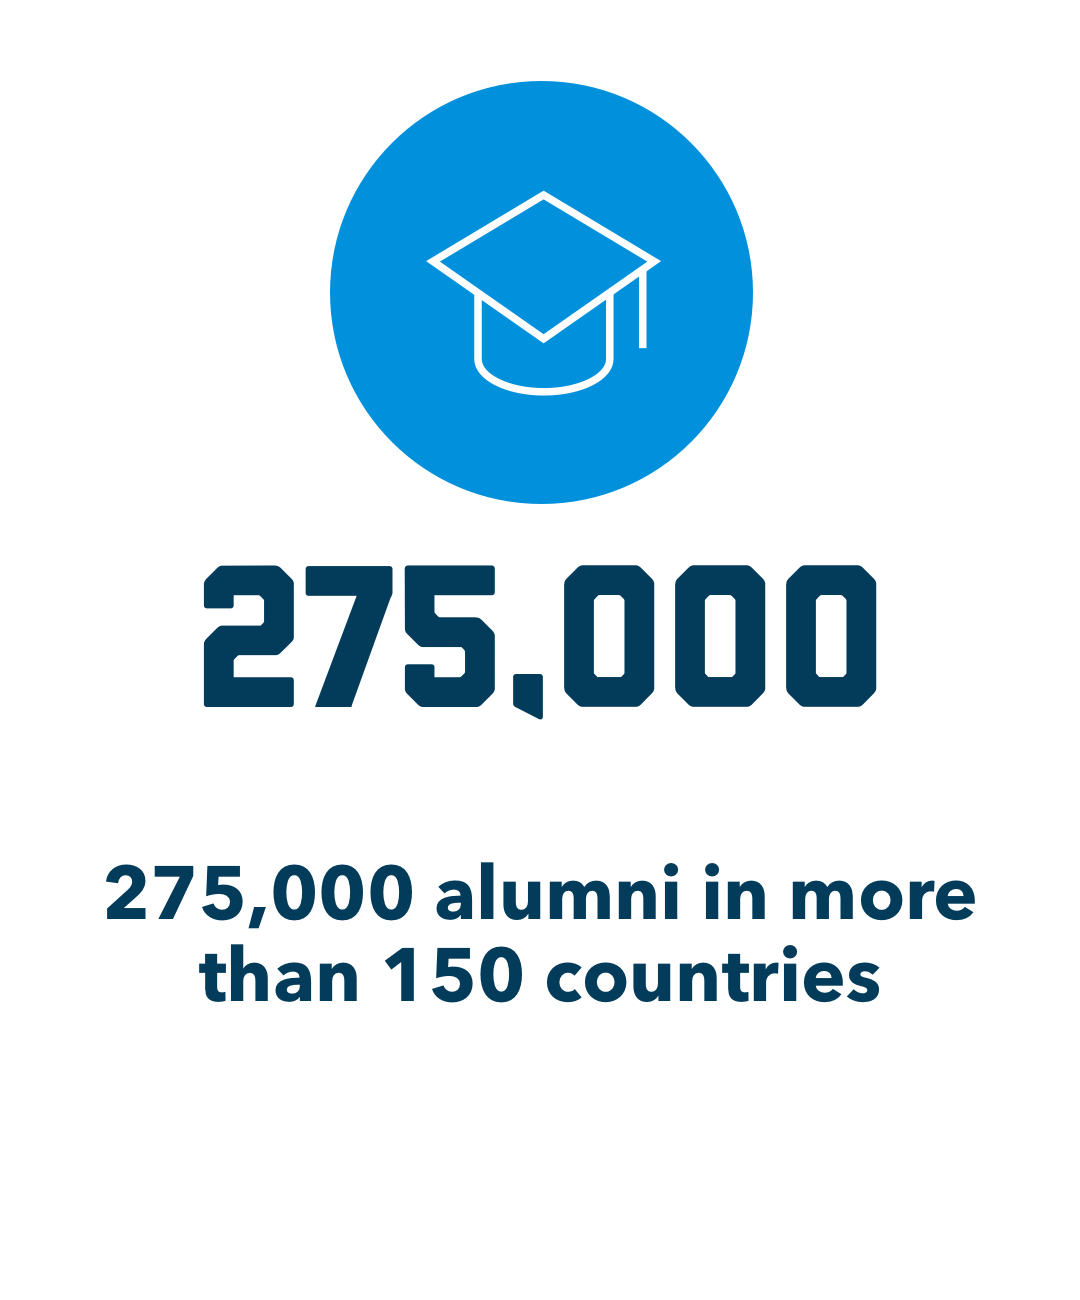 275,000; 275,000 alumni in more than 150 countries